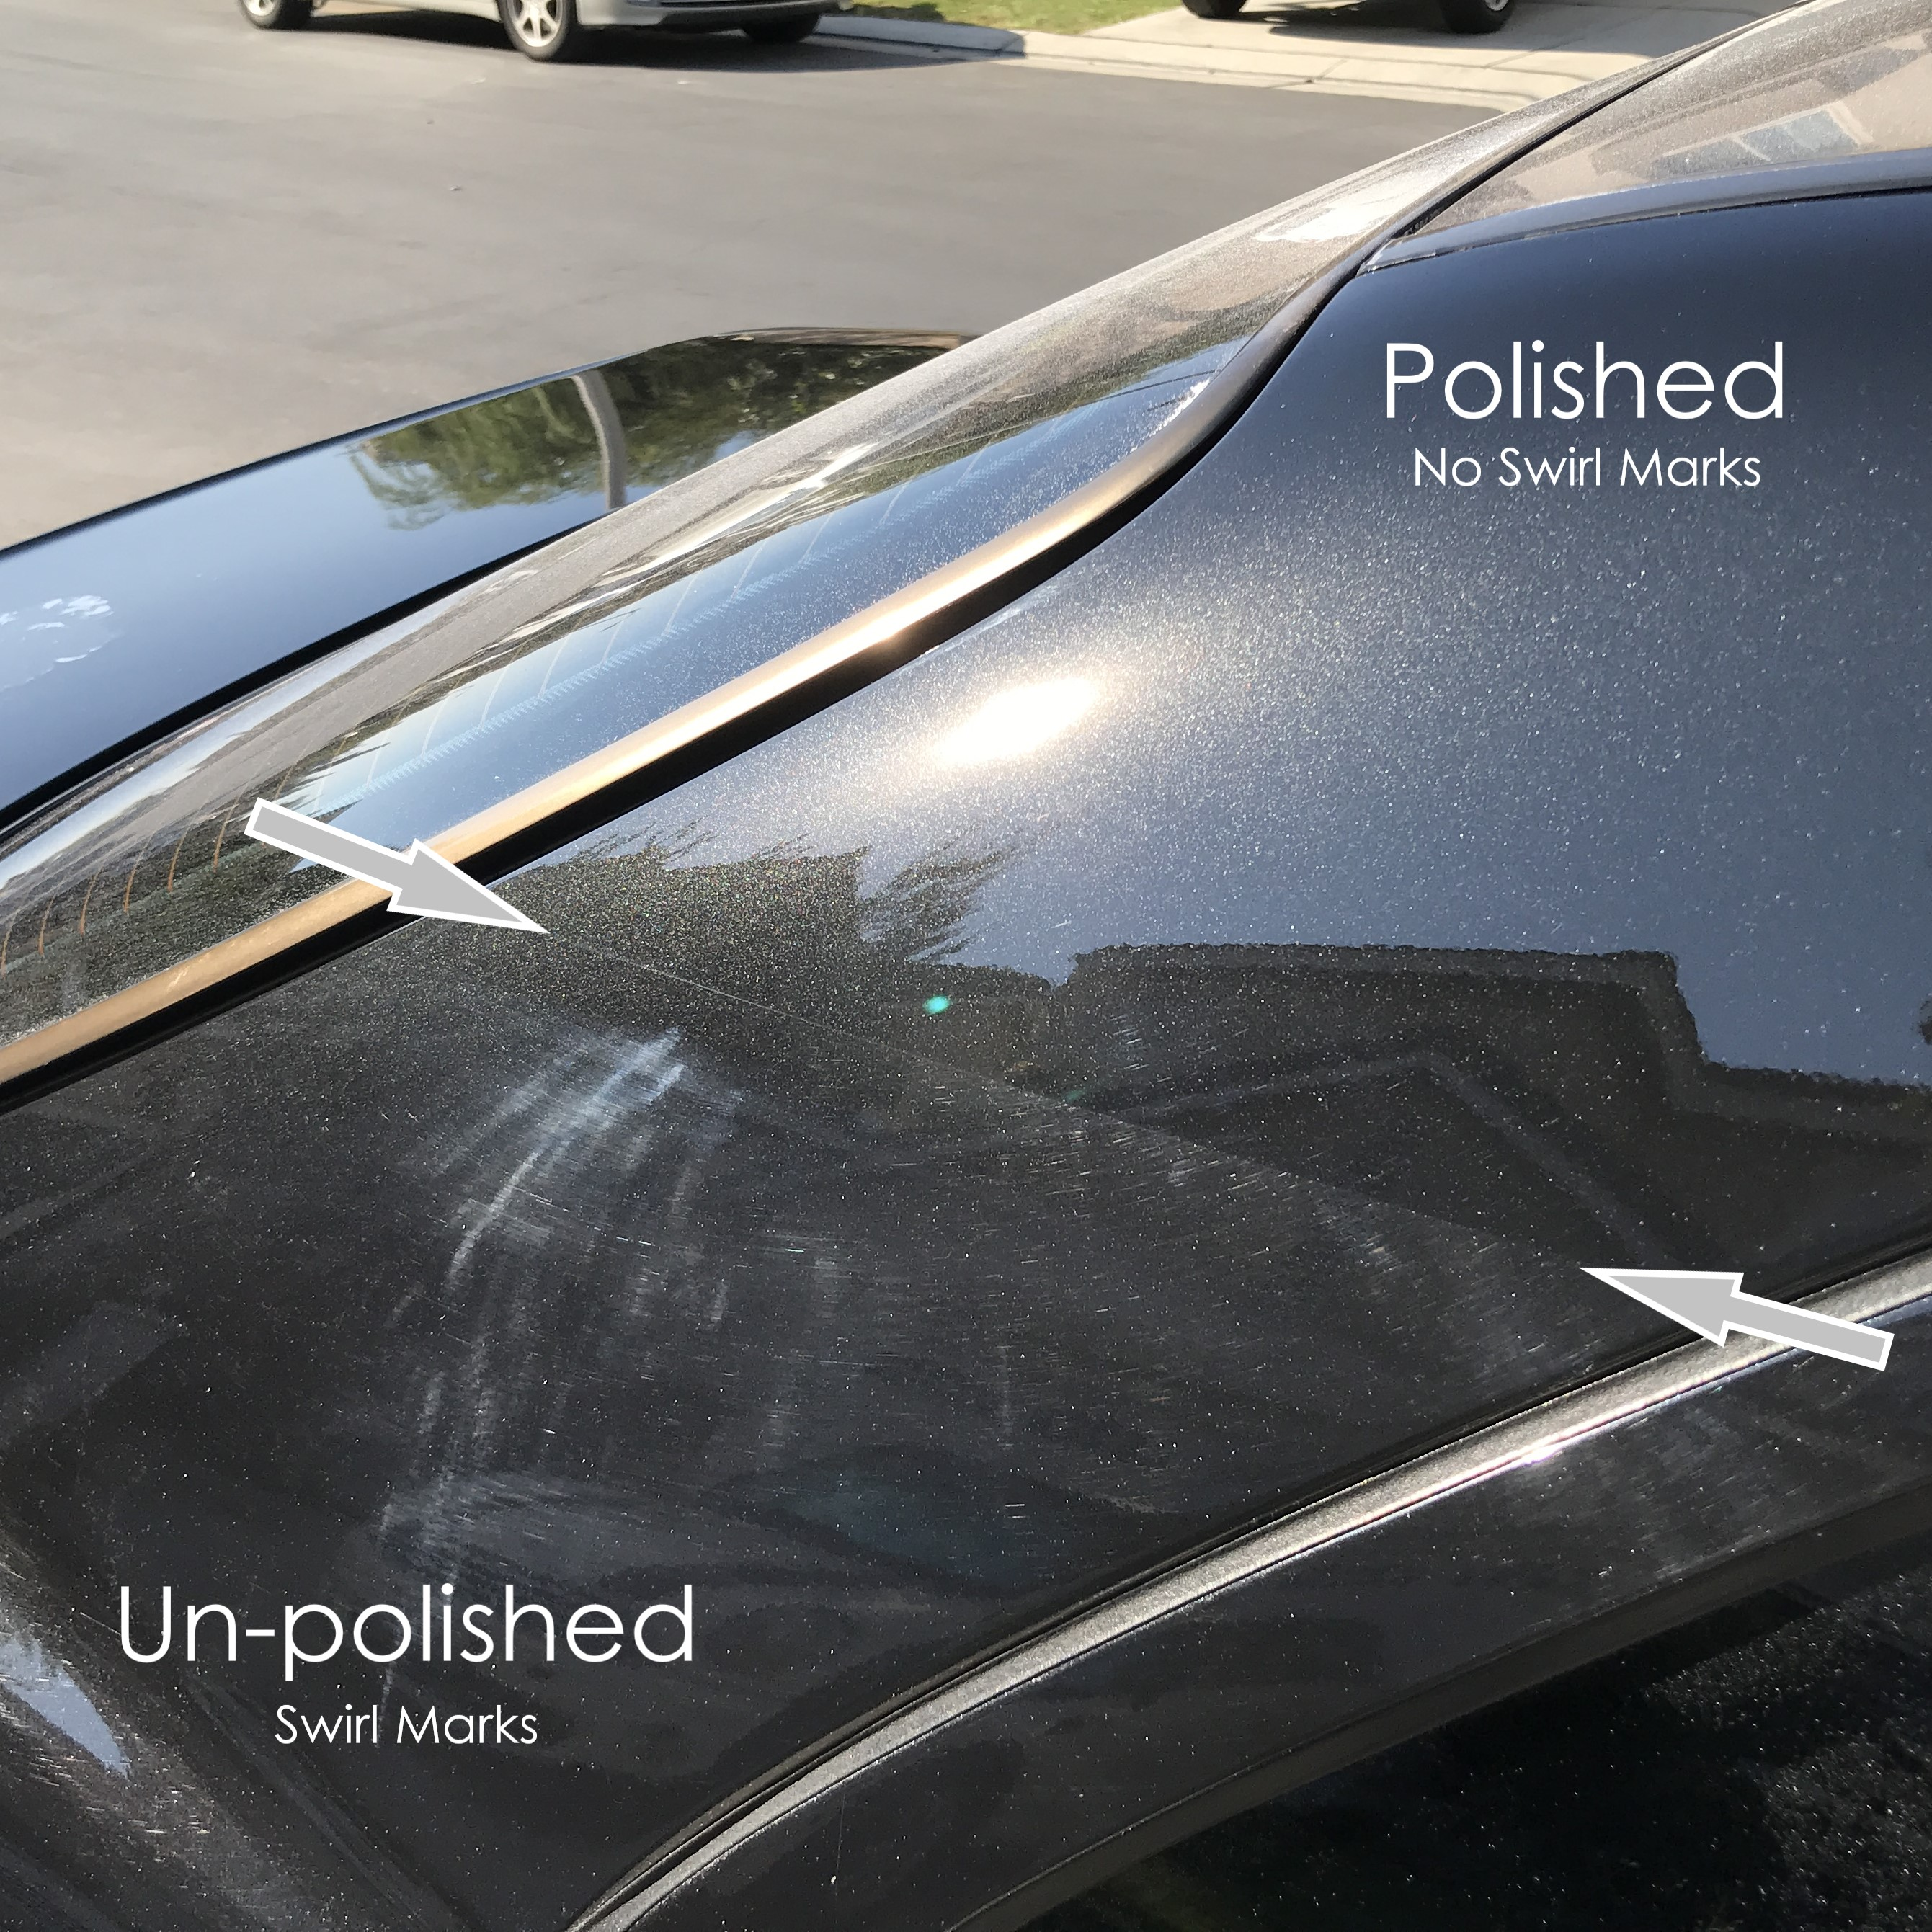 polishing paint to remove swirl marks on car